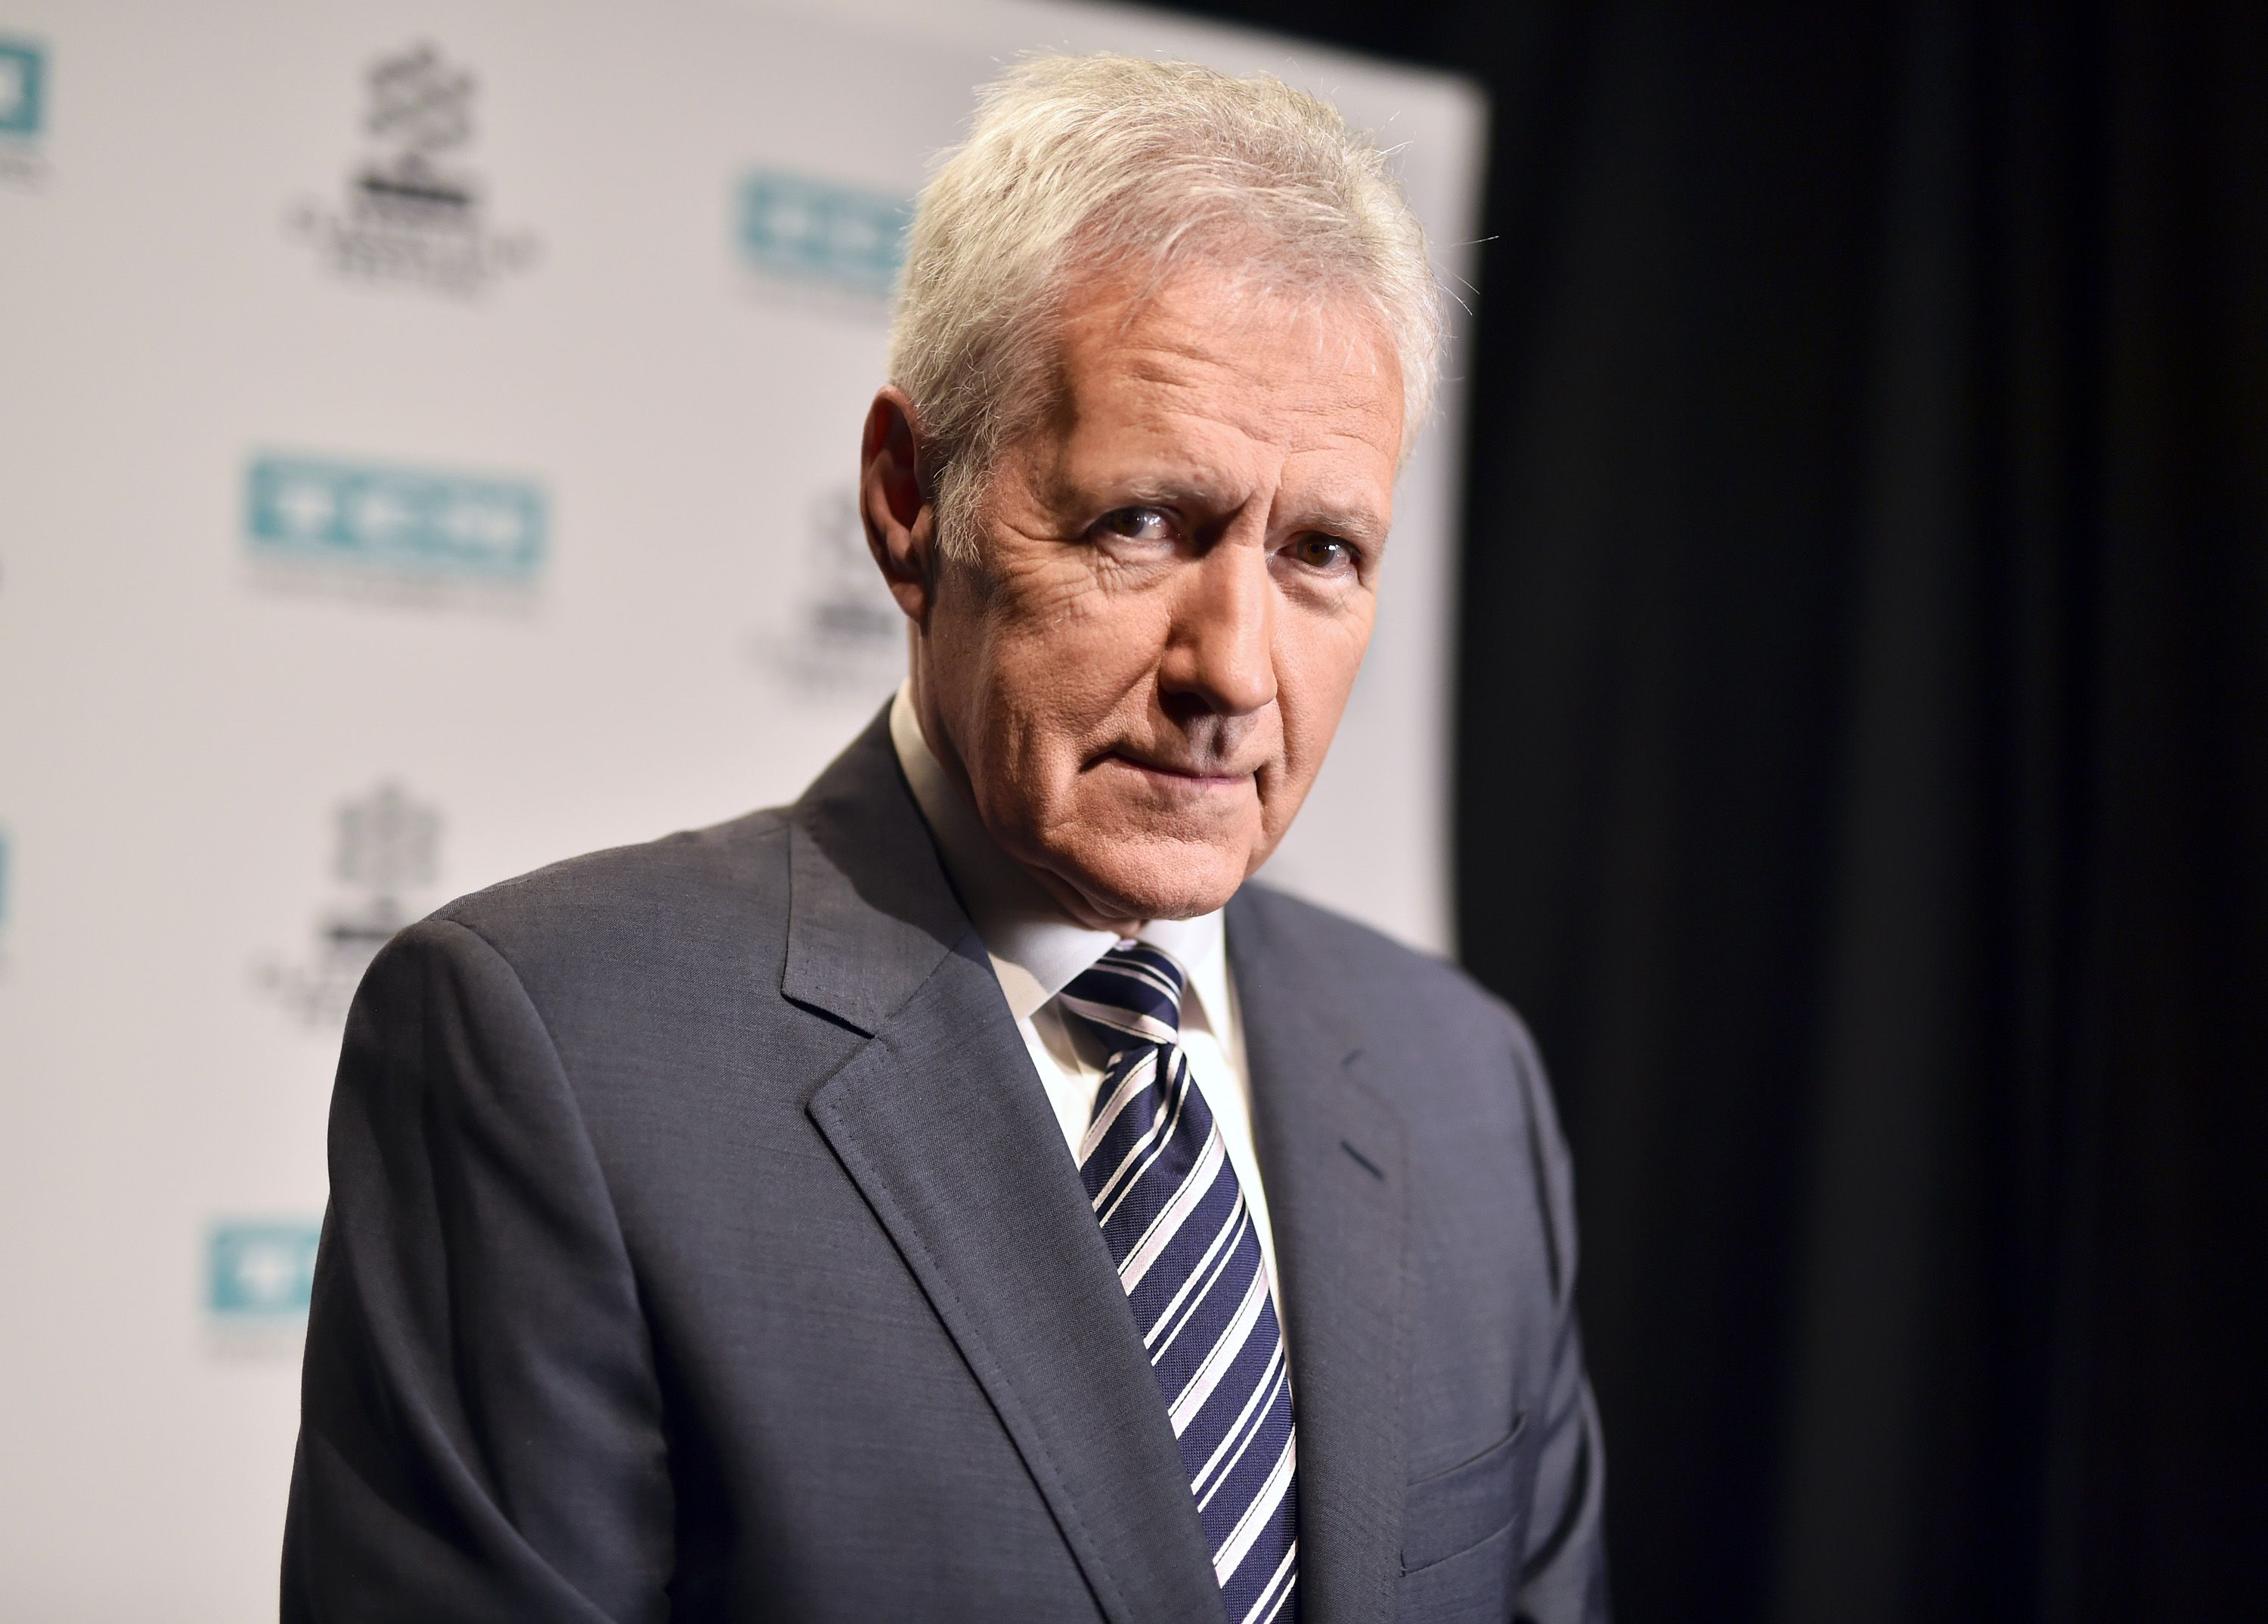 TV personality Alex Trebek at the screening of 'The Bridge on The River Kwai' during the 2017 TCM Classic Film Festival on April 7, 2017   Photo: Getty Images